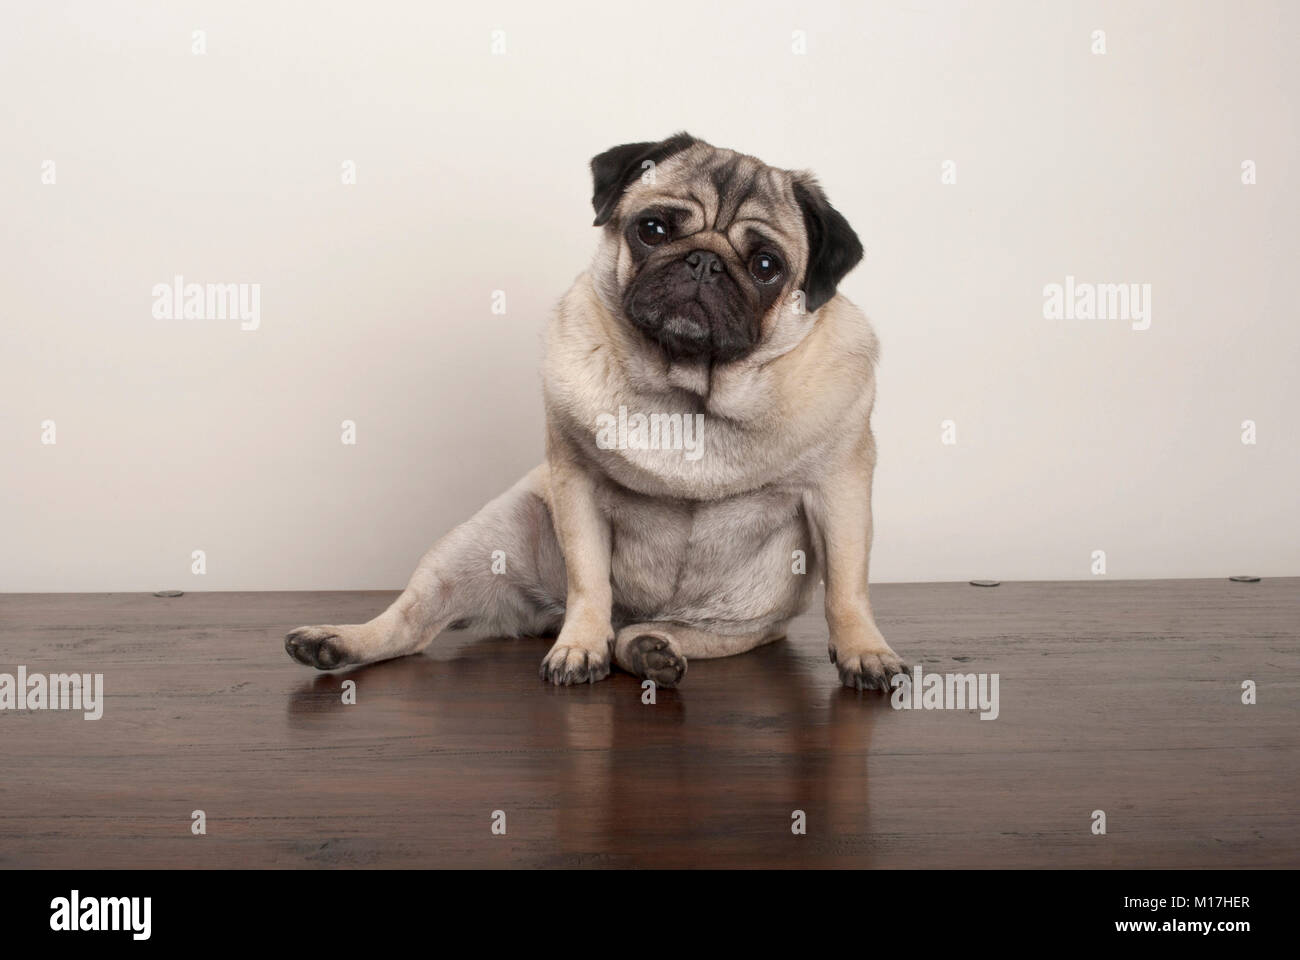 Sweet Funny Pug Puppy Dog Sitting Down On Wooden Ground On Plain Stock Photo Alamy